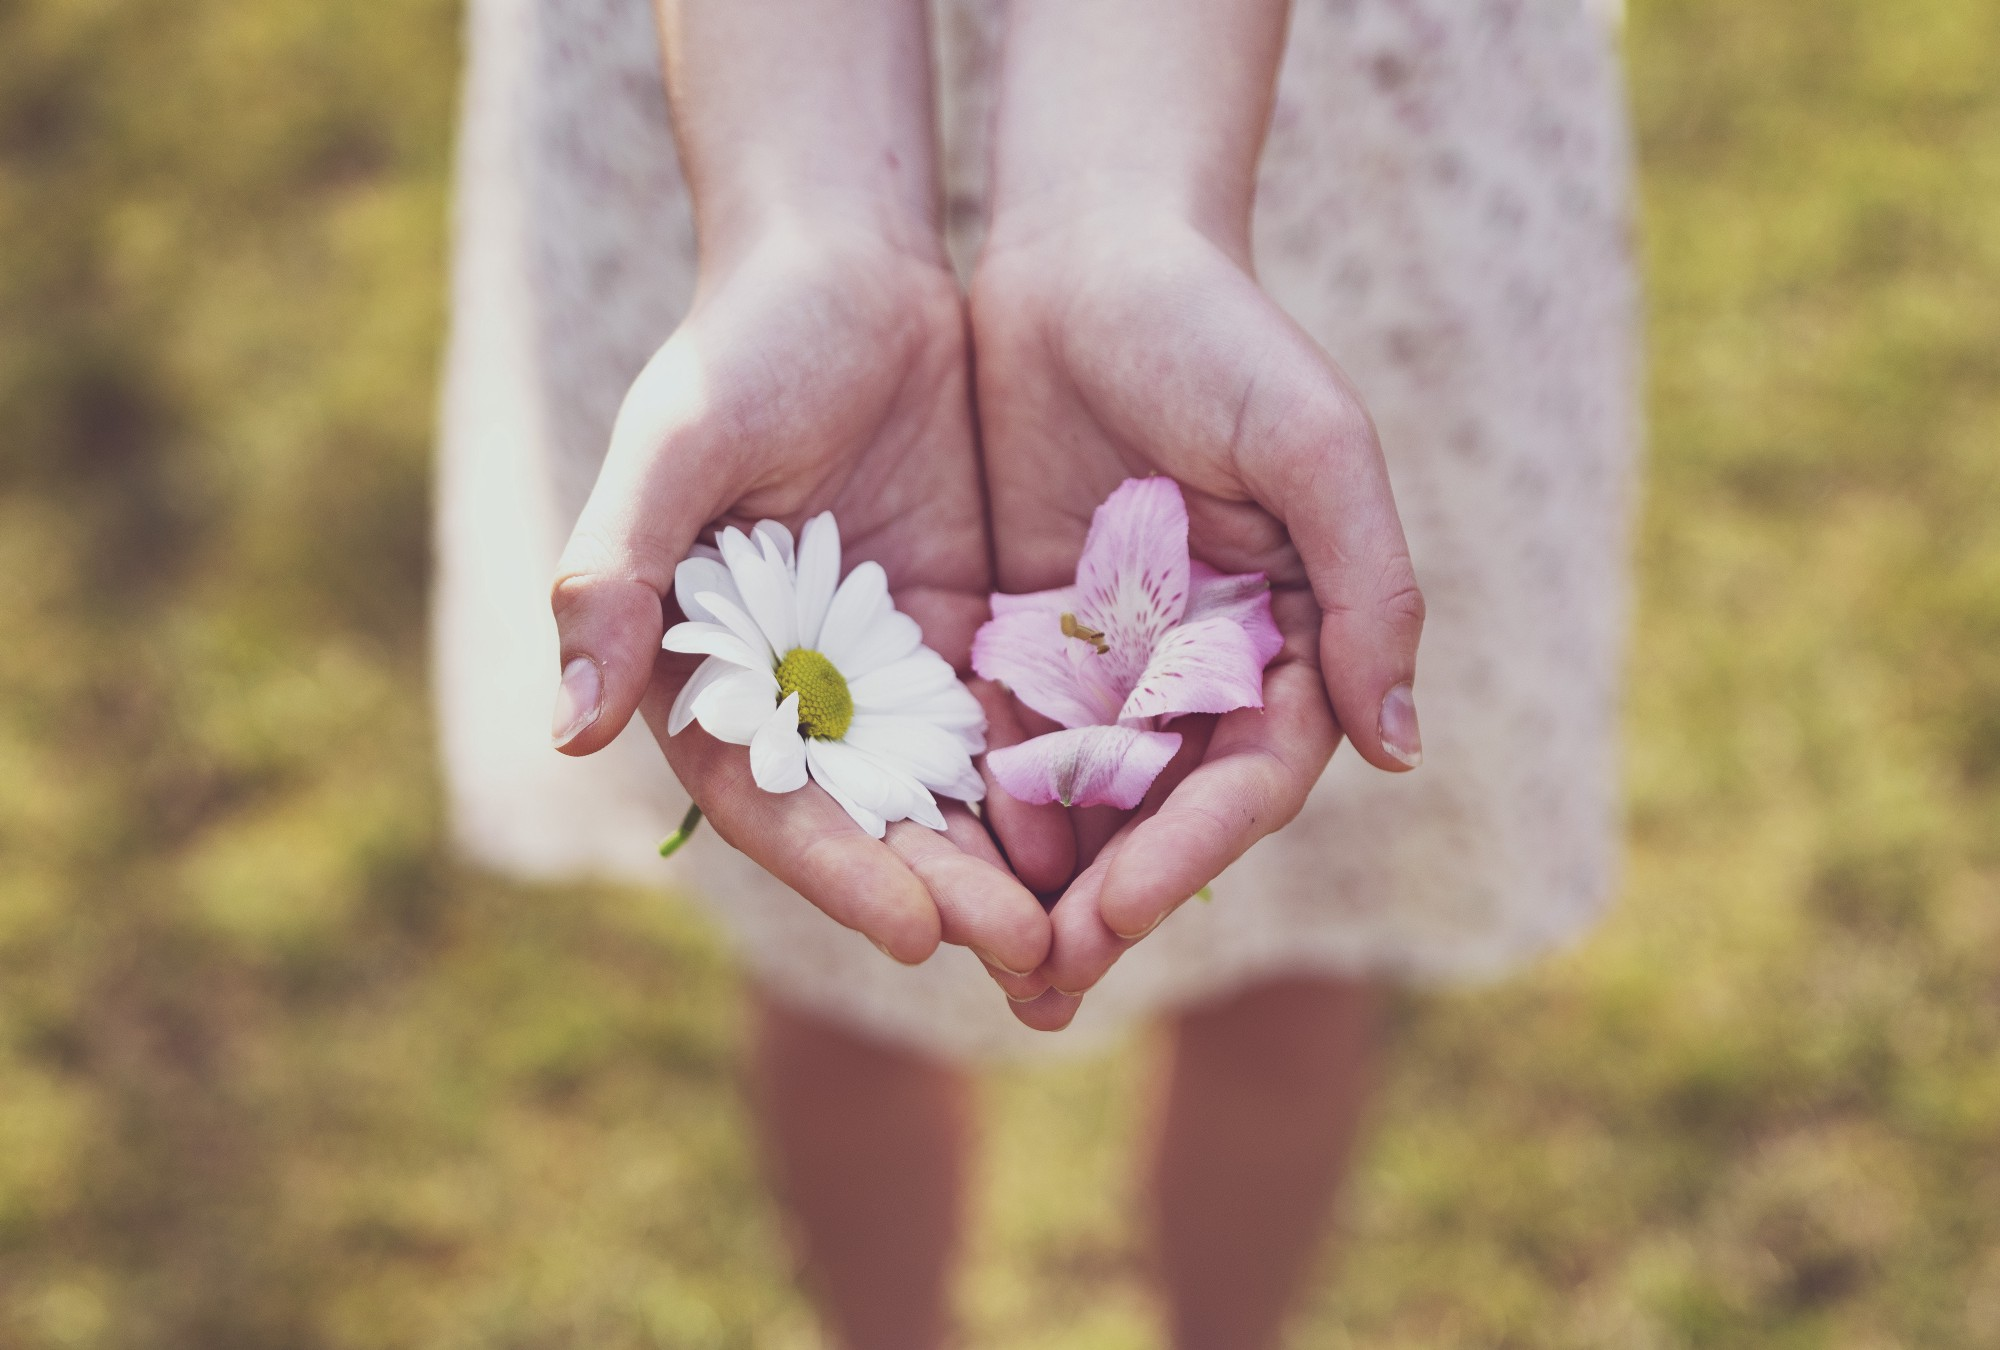 Woman's hands cupped together holding flower petals.